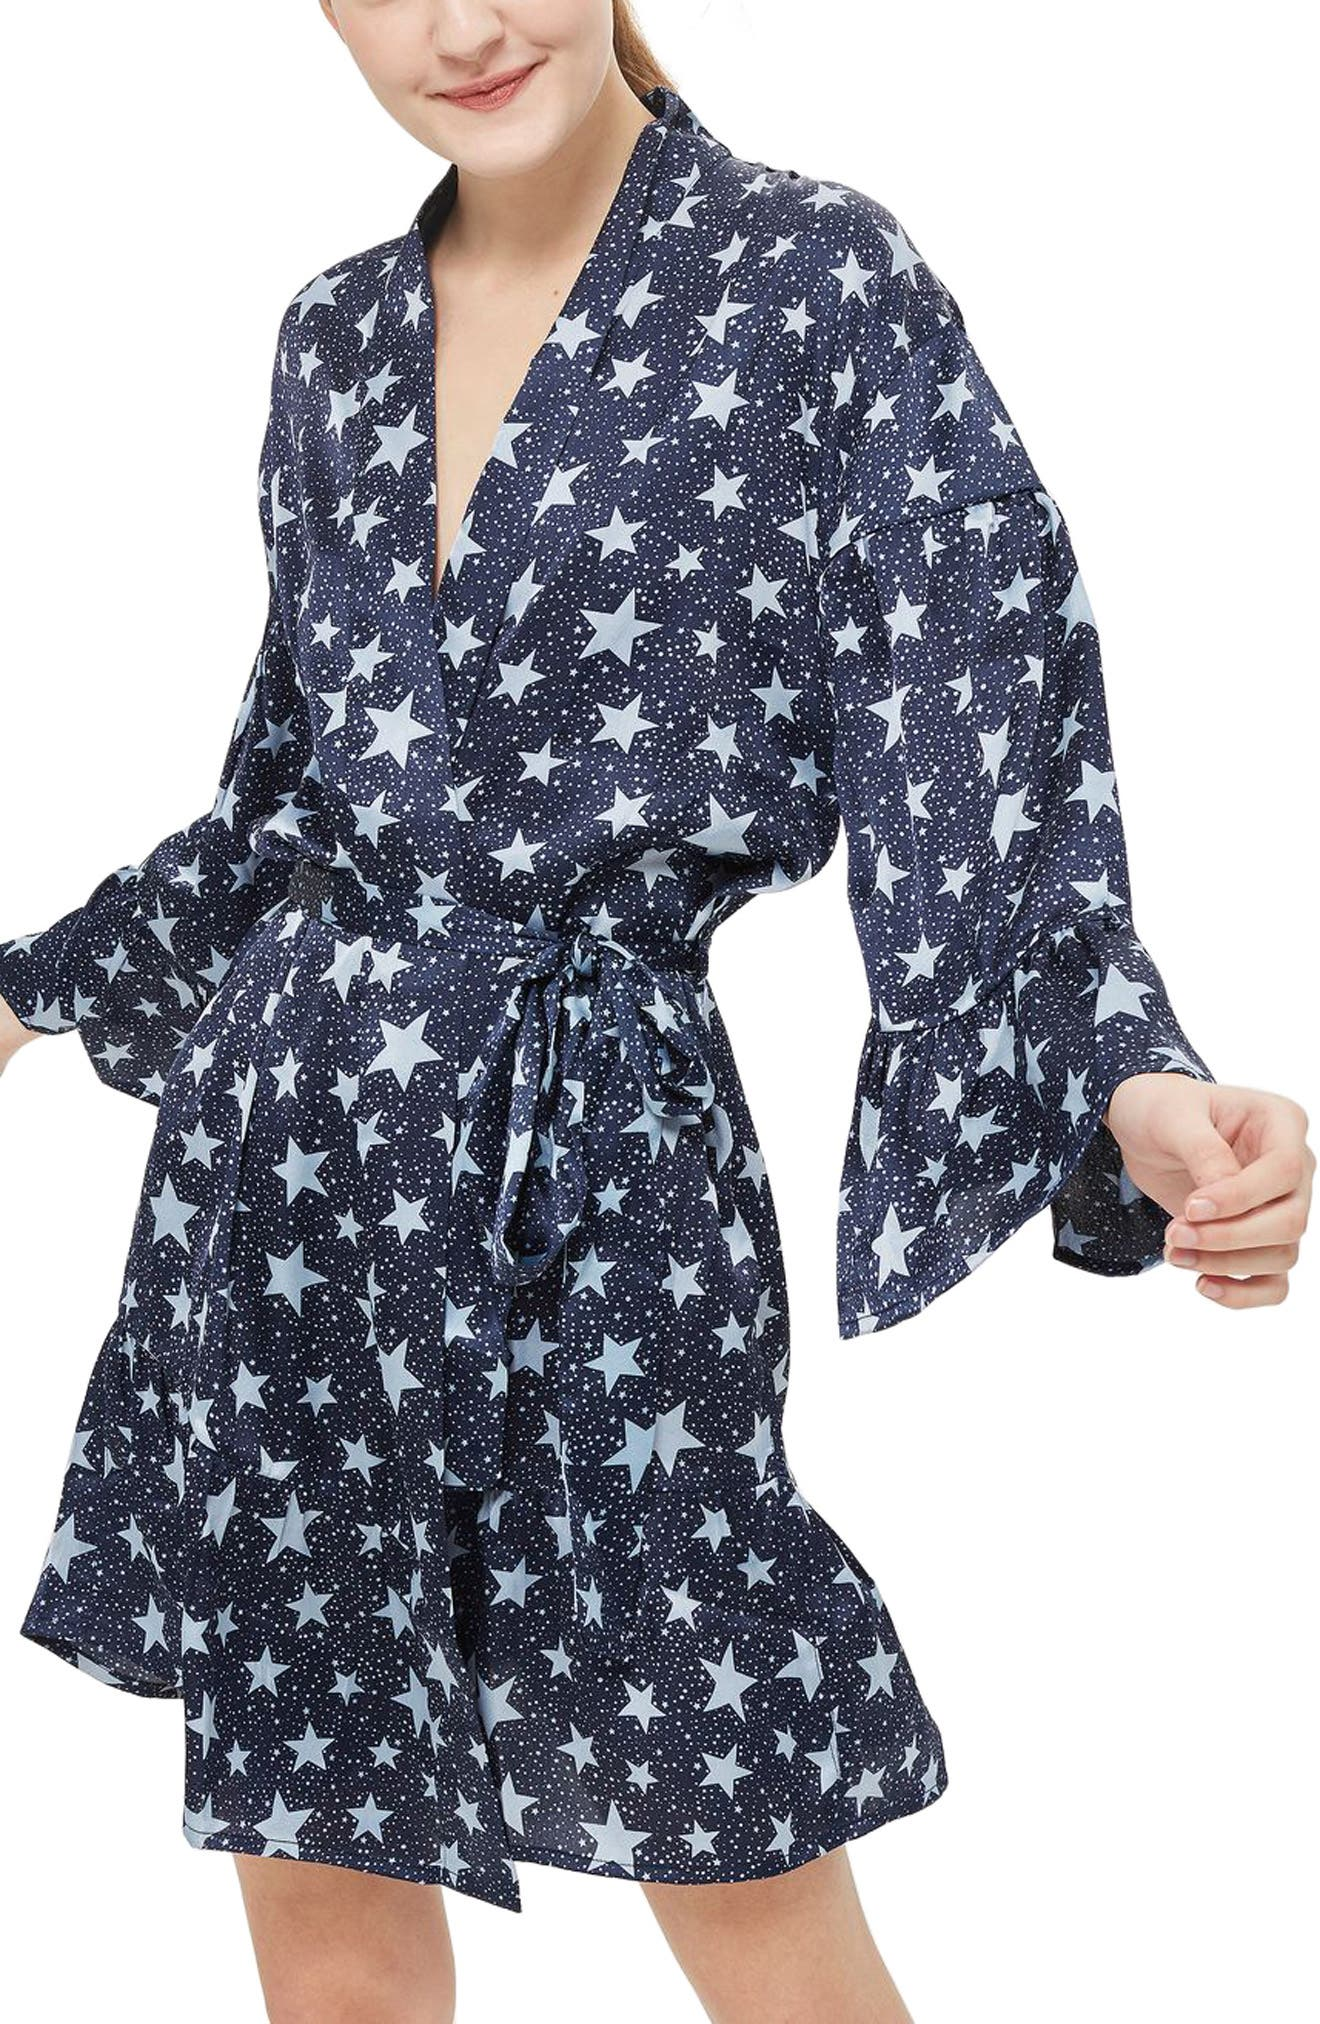 Star Satin Short Robe,                         Main,                         color, Navy Blue Multi